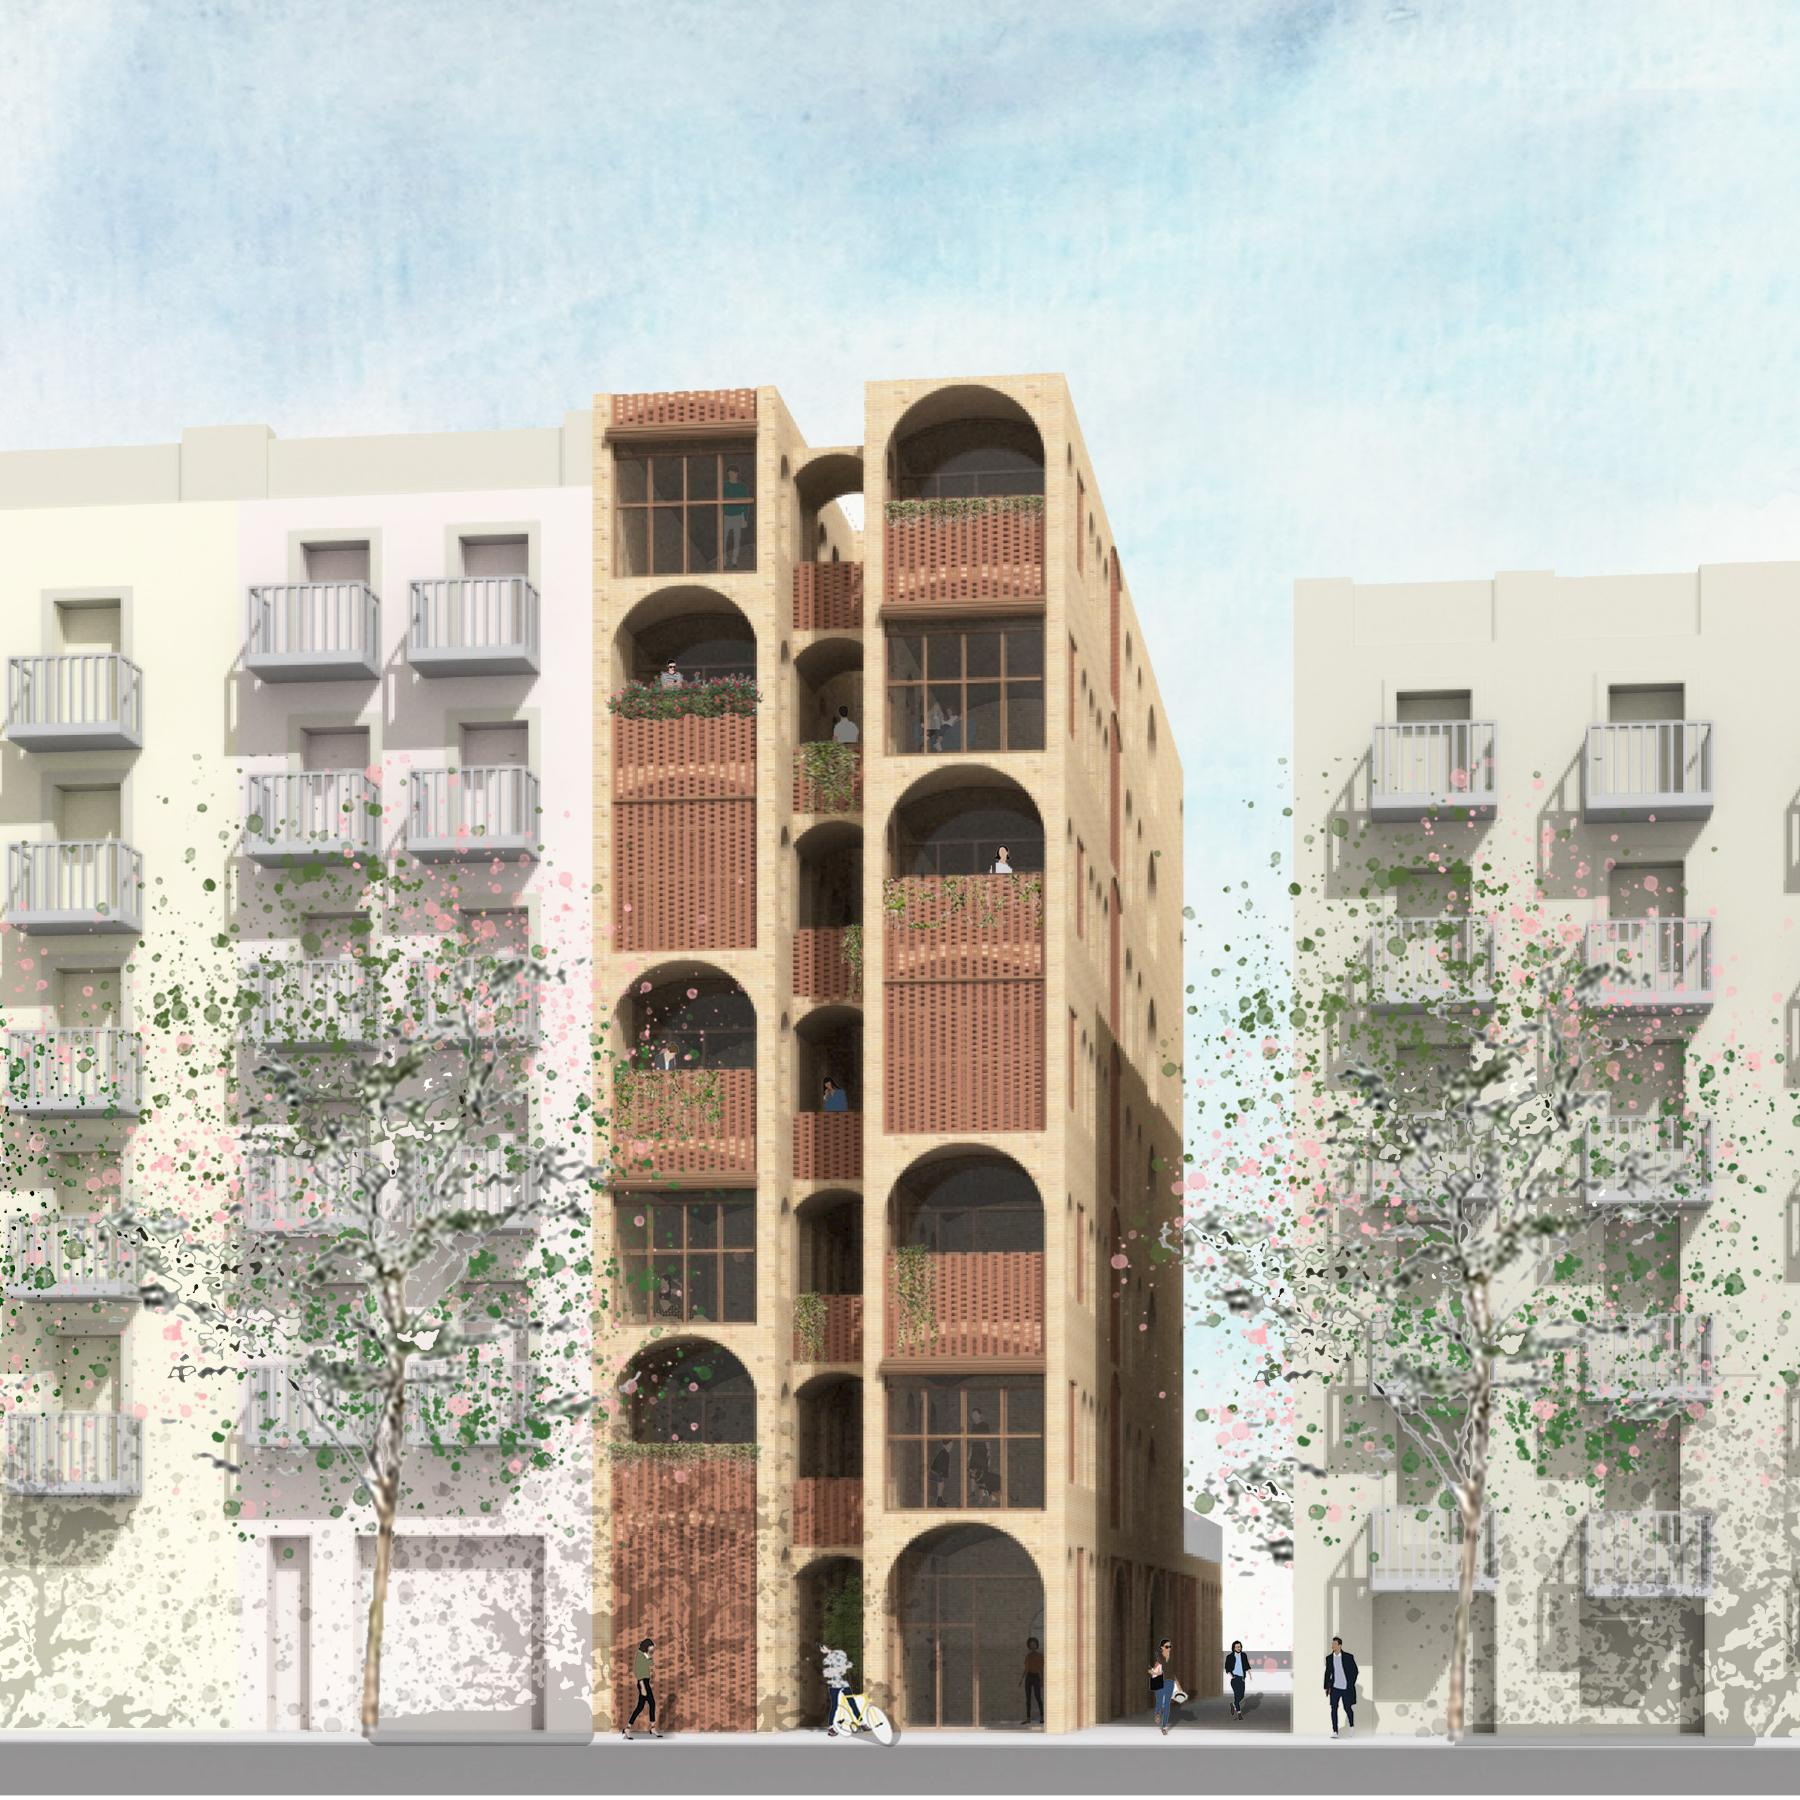 Exterior rendering showing arched openings in facade